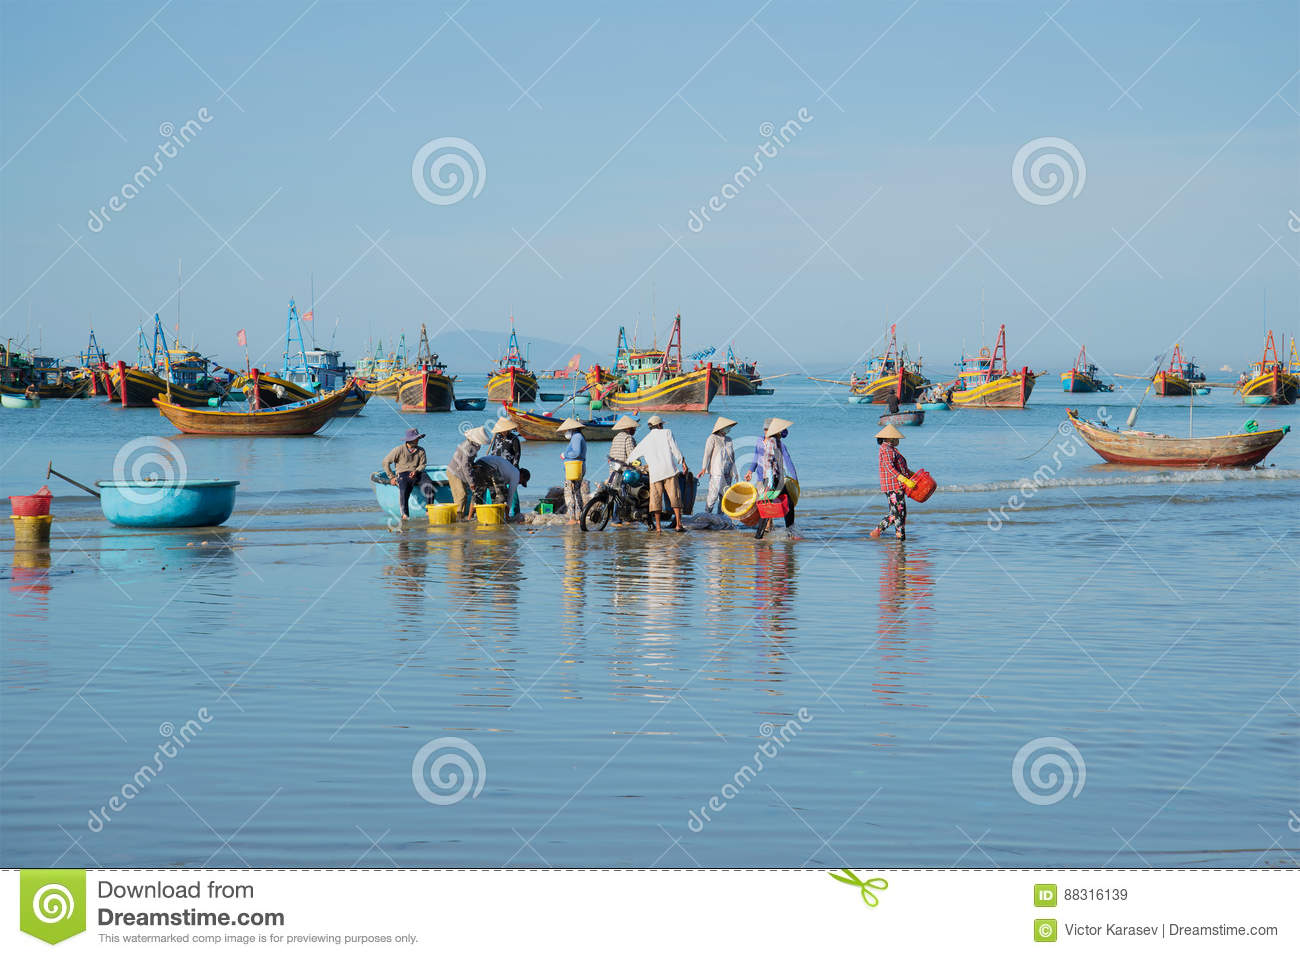 Blue Morning In The Harbour Of The Fishing Village Of Mui Ne. South Vietnam Editorial Stock Image - Image of sunny. boat: 88316139